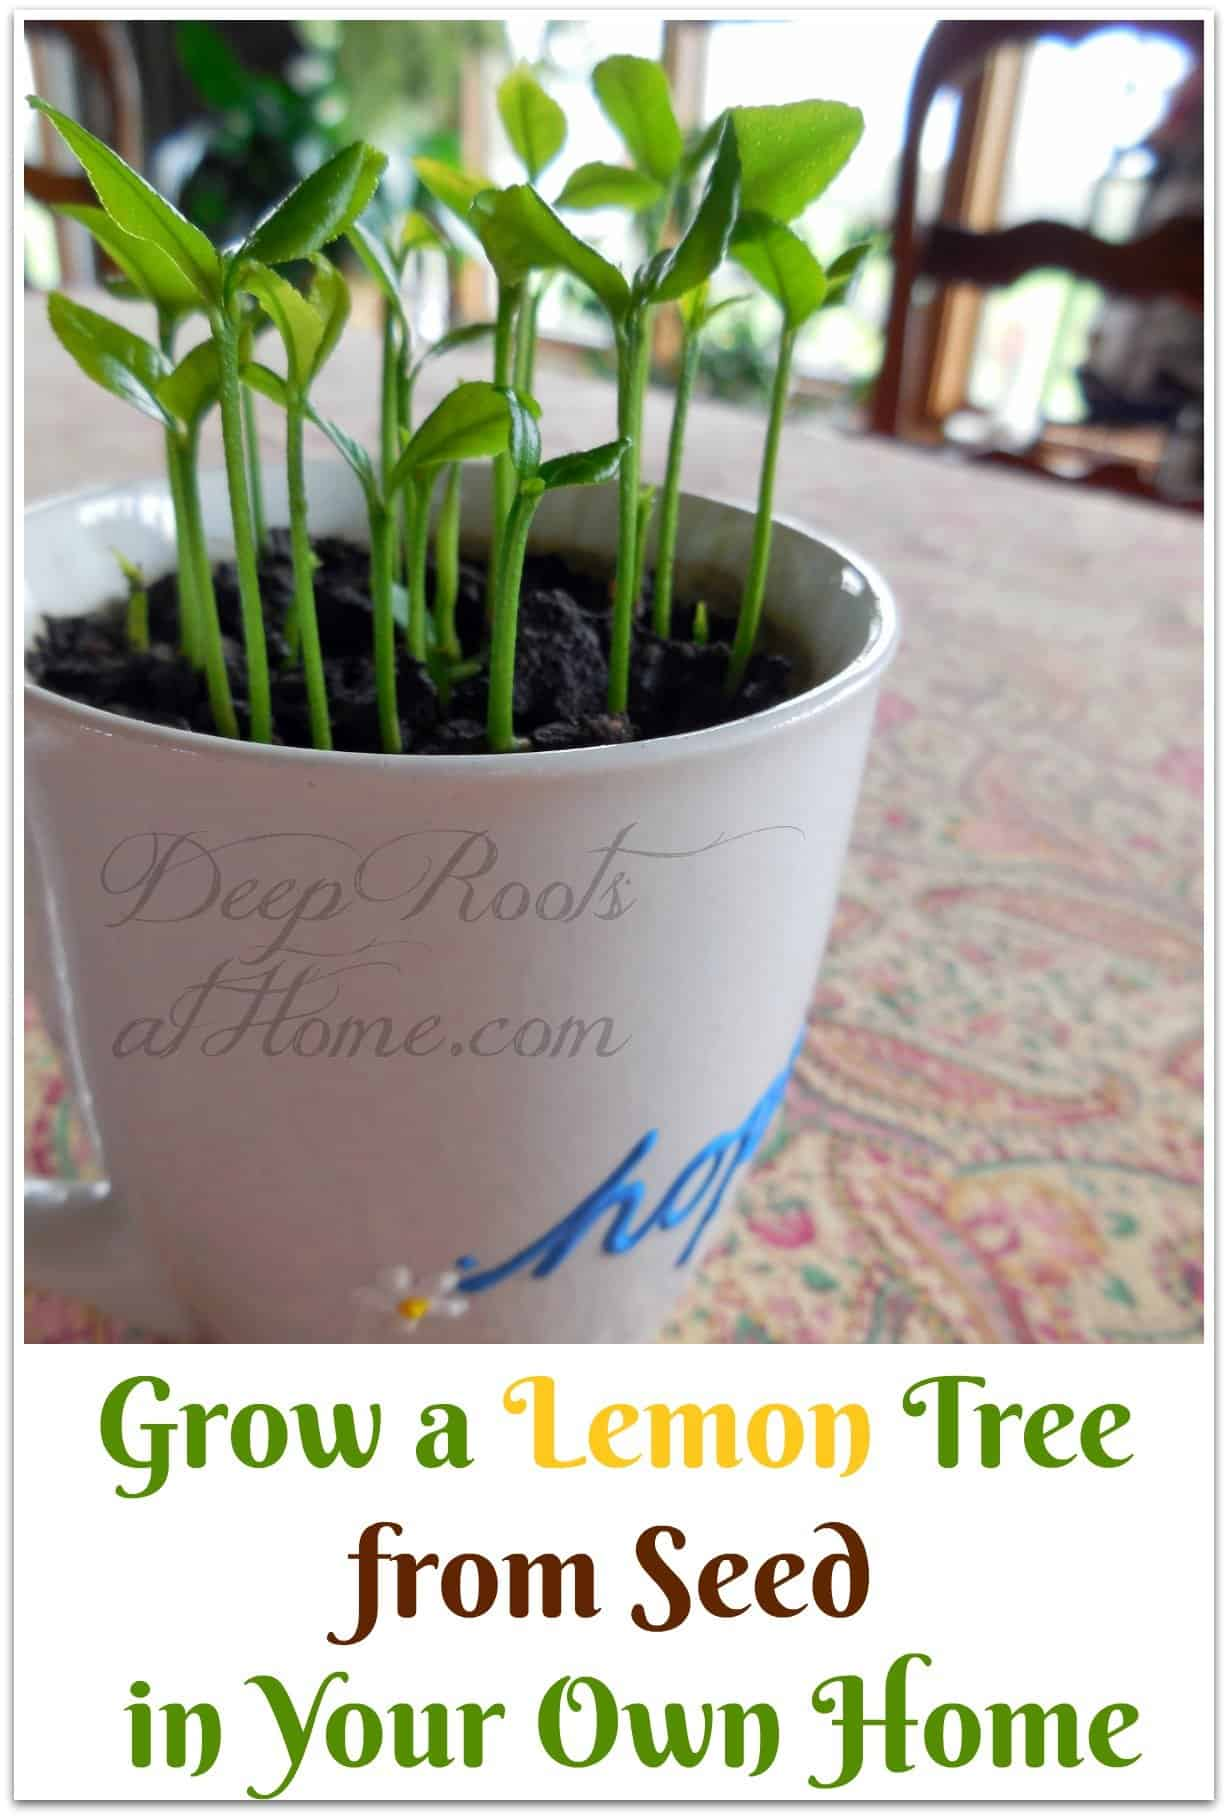 Grow a Lemon Tree from Seed in Your Own Home, lemon tree seedlings in a teacup